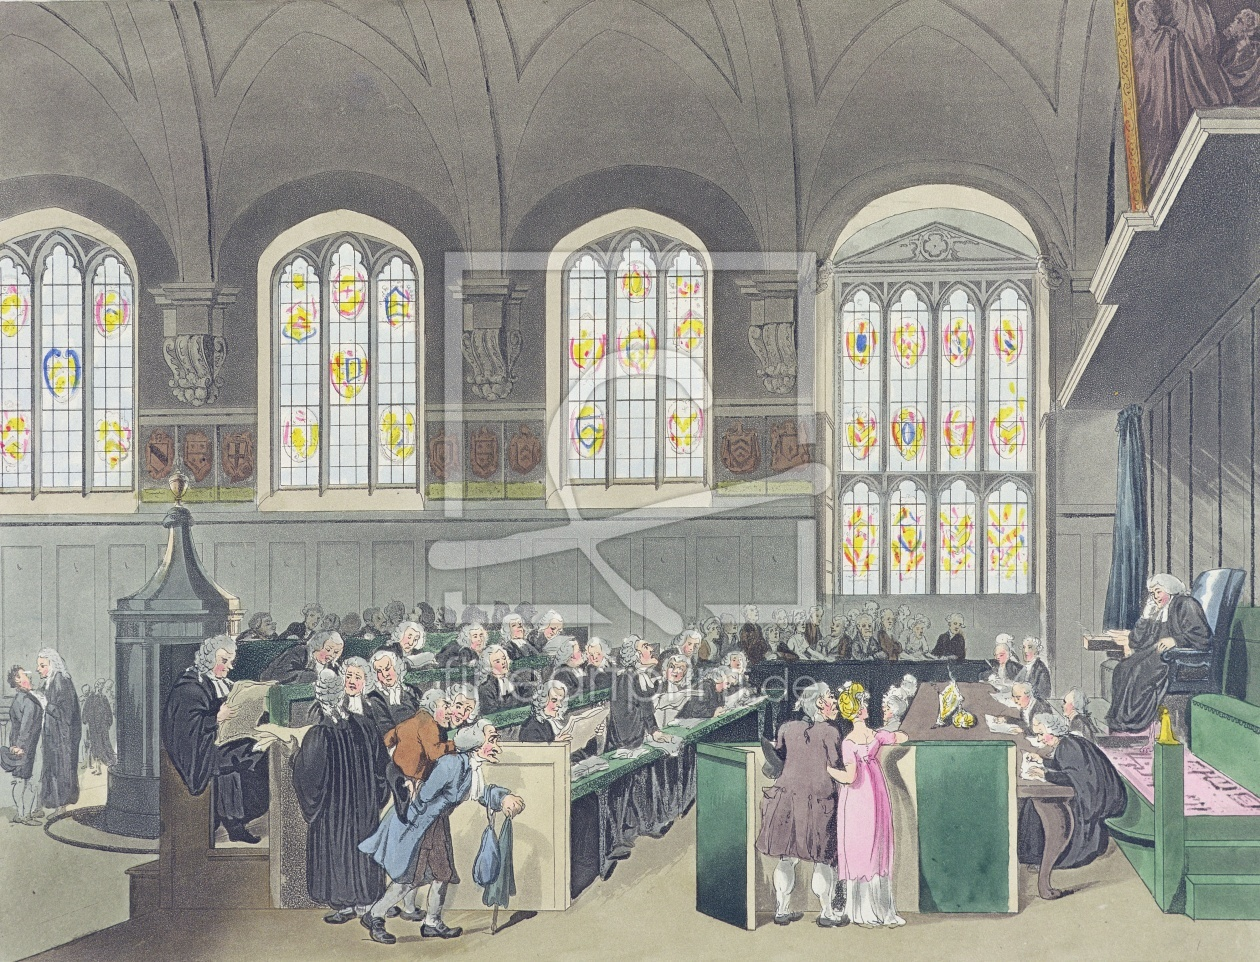 Bild-Nr.: 31002636 Court of Chancery, Lincoln's Inn Hall, engraved by Constantine Stadler , 1808 erstellt von Rowlandson, Thomas